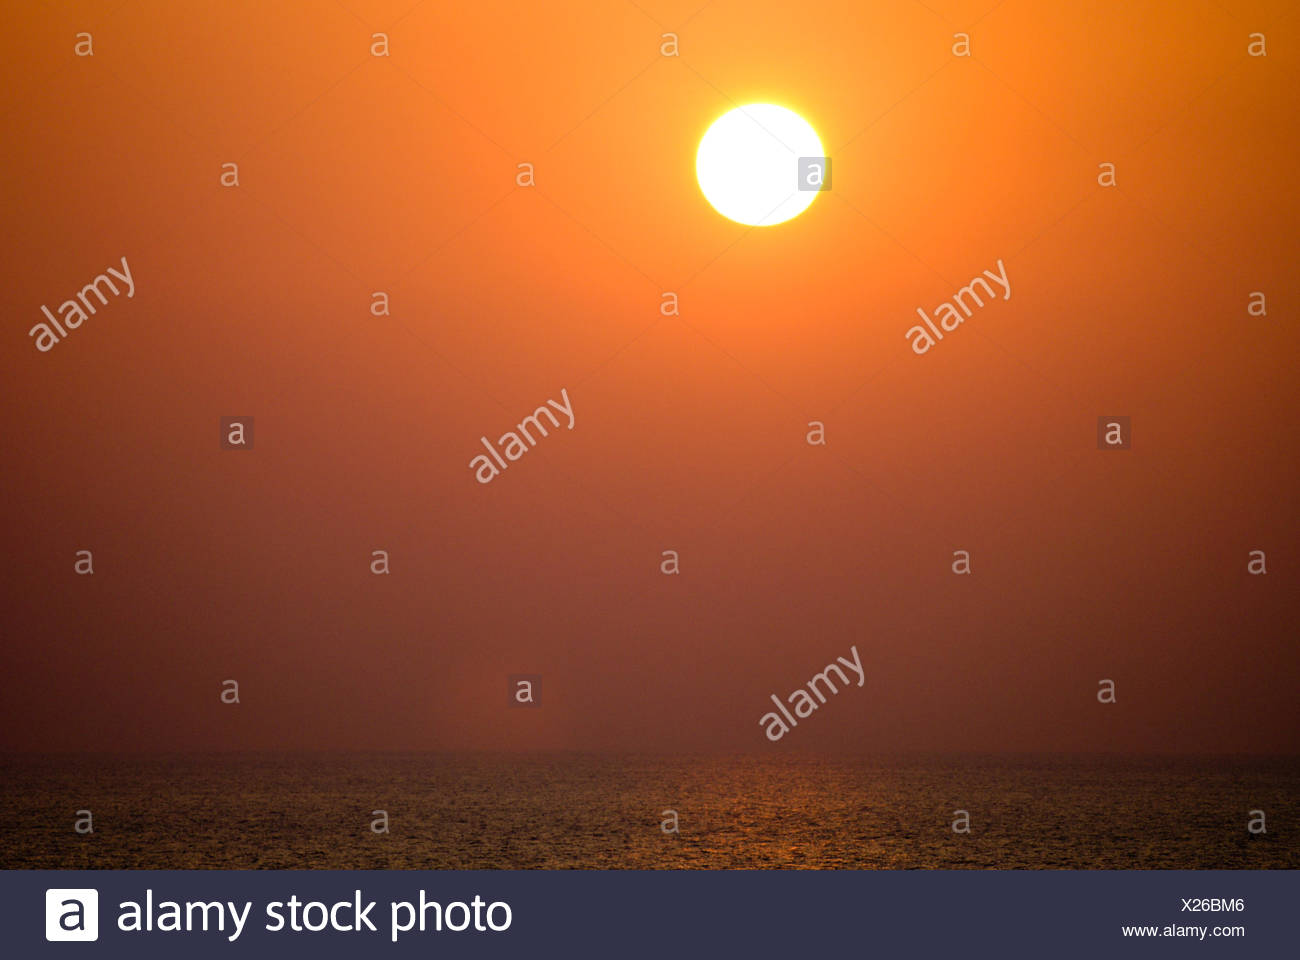 Scenic View Of Sun Over Sea During Sunset - Stock Image